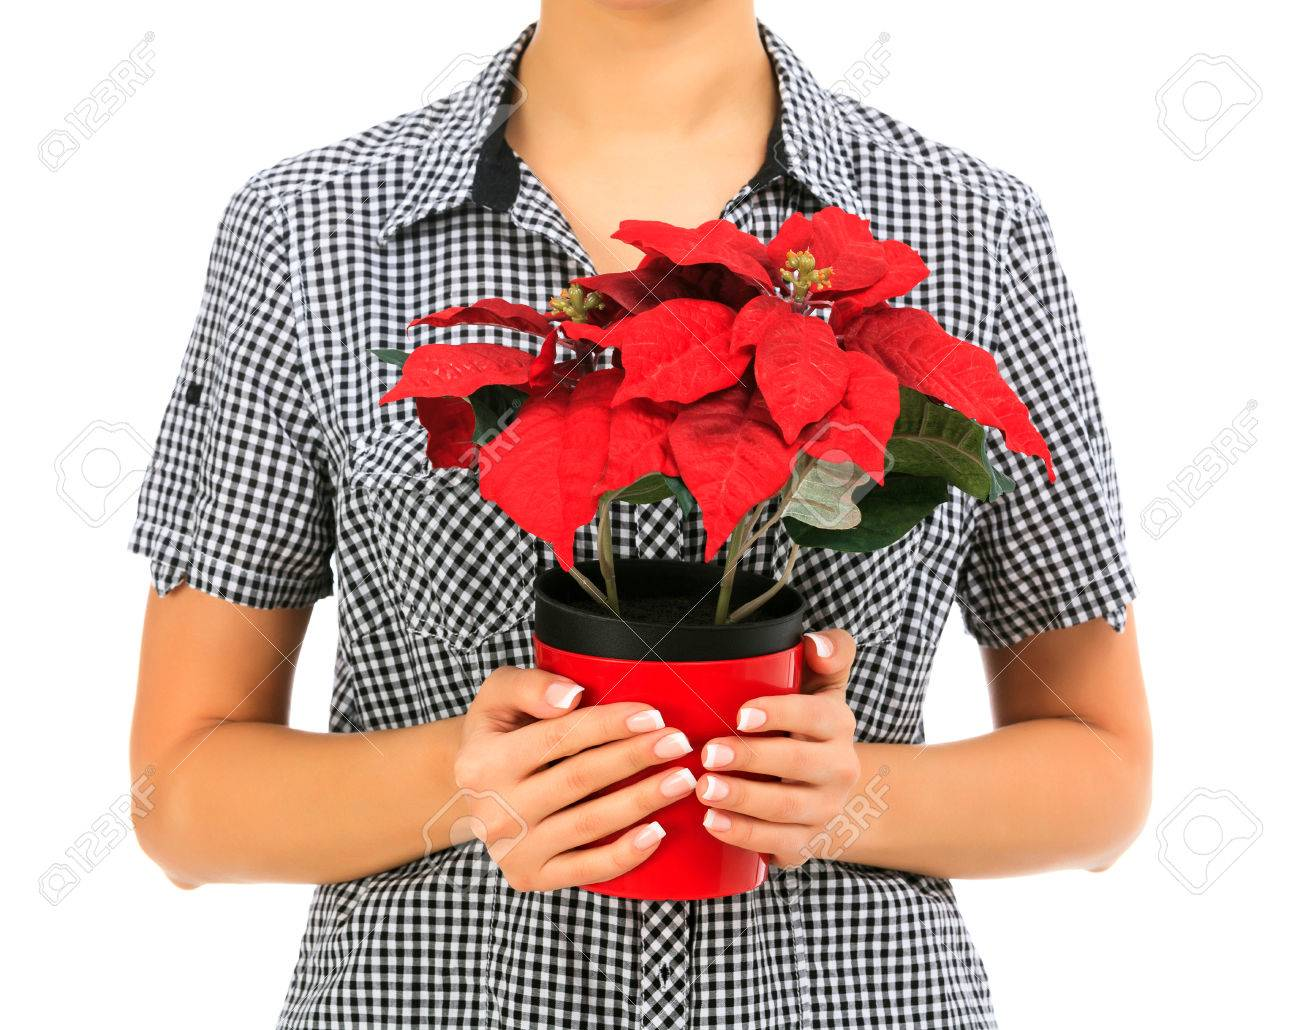 female holds a poinsettia, white background, copyspace Stock Photo - 24722568